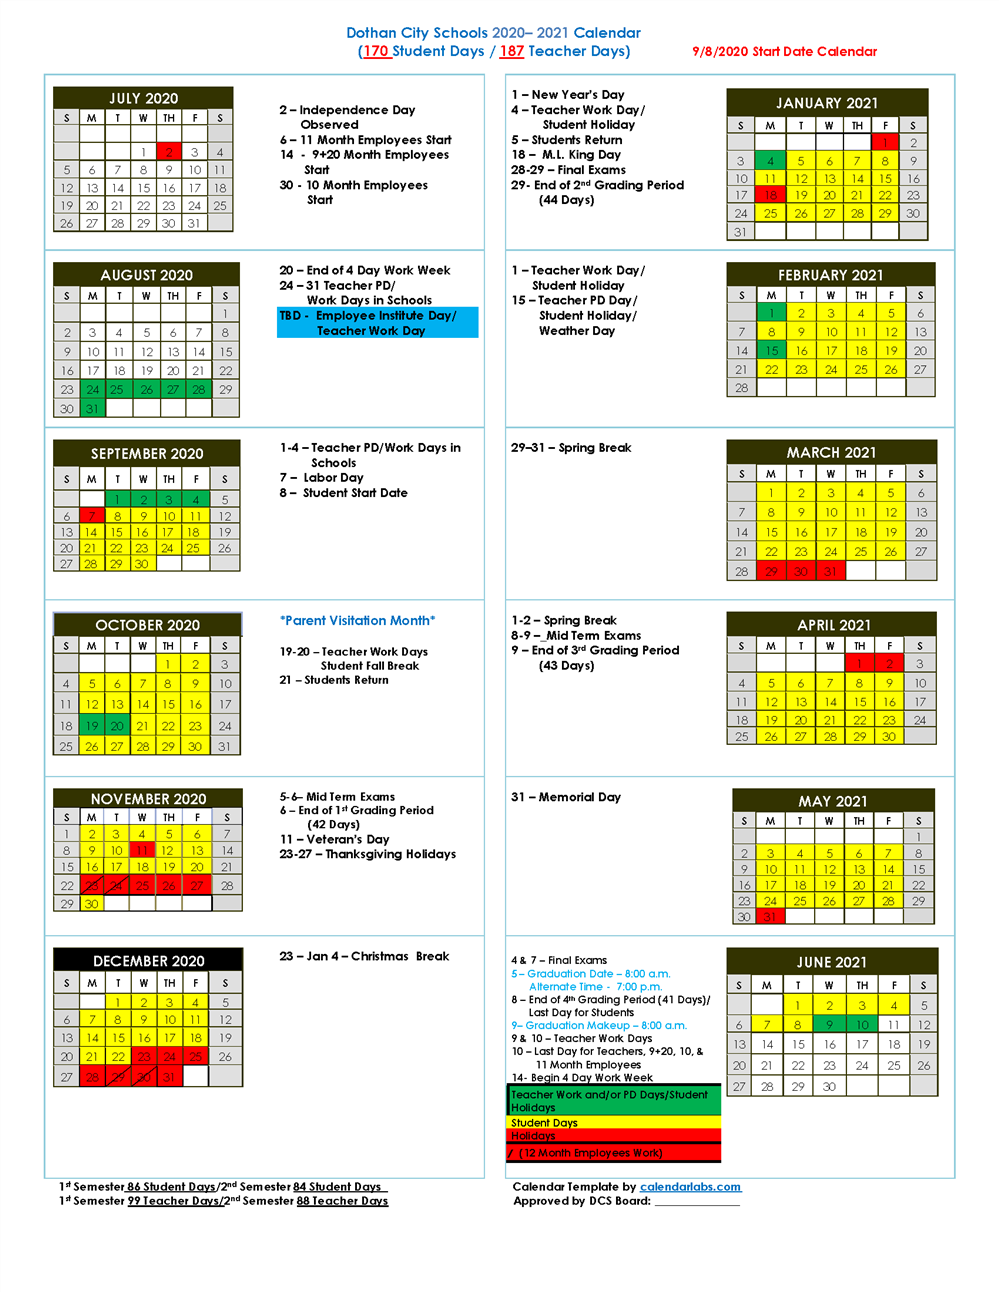 Dothan City Schools Releases 2020-2021Updated School Calendar